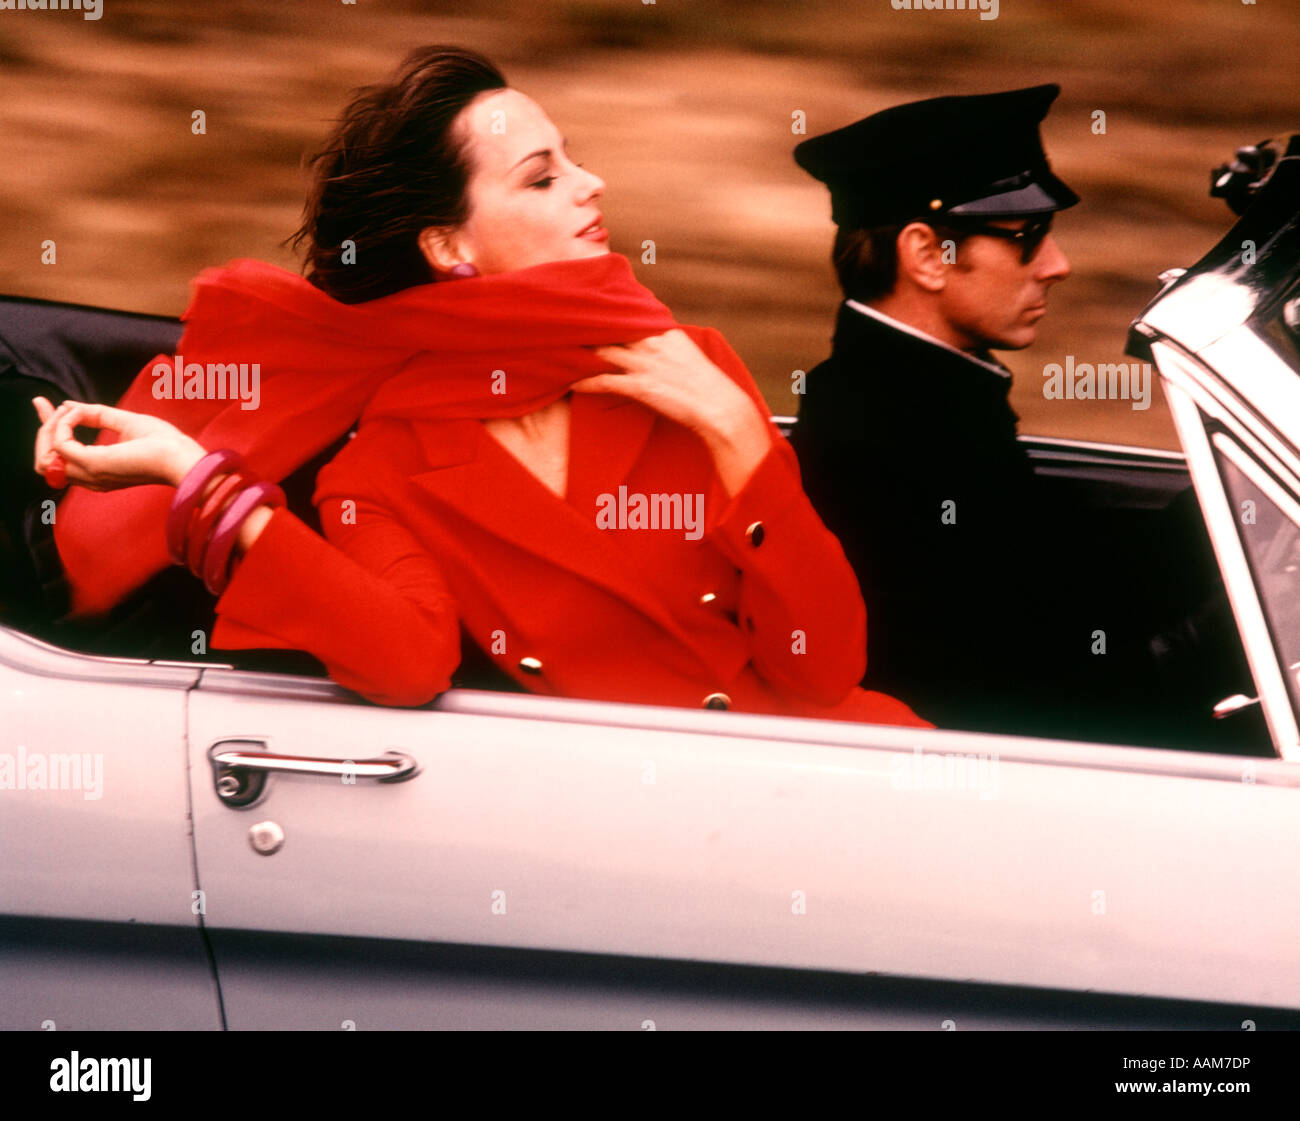 1970 1970s STYLISH WOMAN RED DRESS SCARF DRIVING OPEN AIR CONVERTIBLE SPORTS CAR CHAUFFEUR STYLE FASHION WEALTH - Stock Image